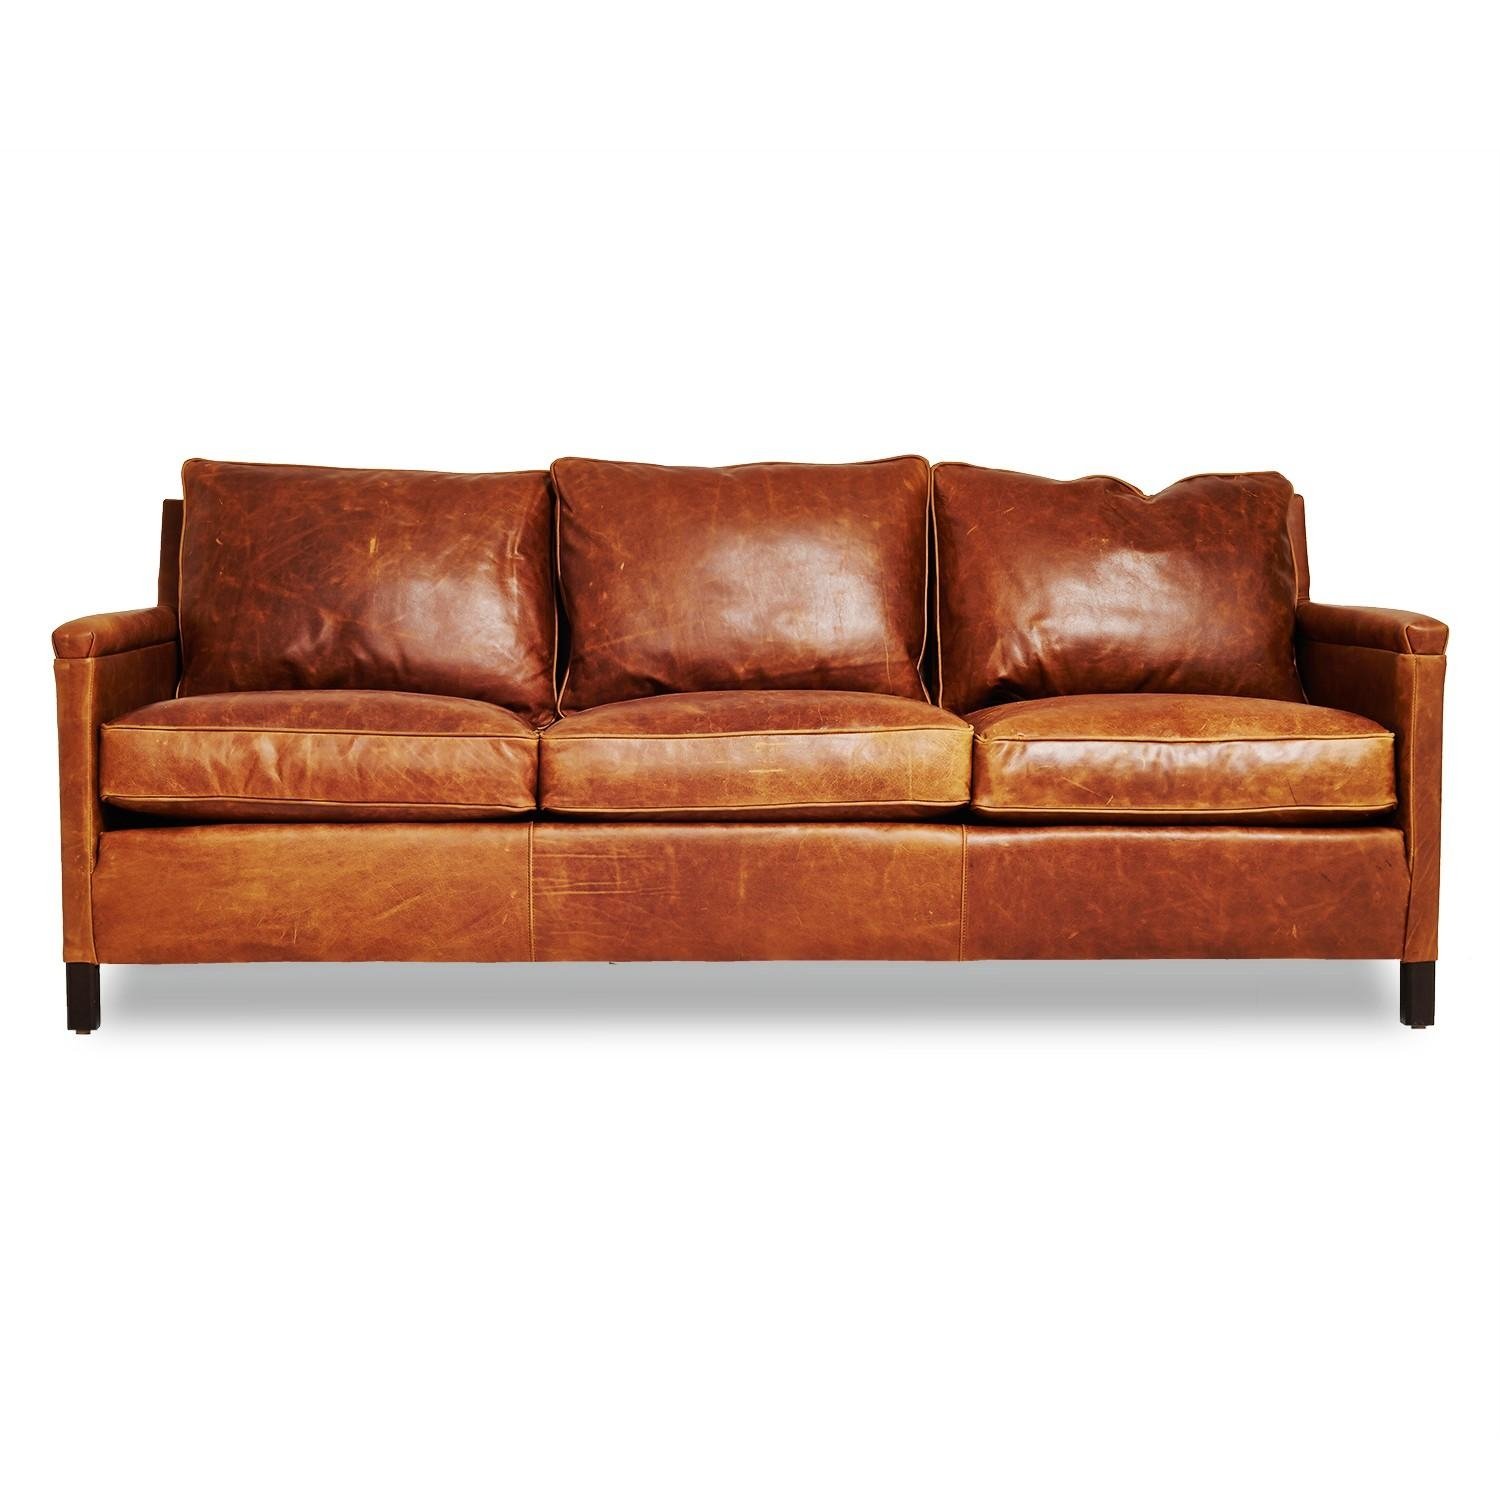 camel colored leather sofas cotton 2018 latest sofa ideas